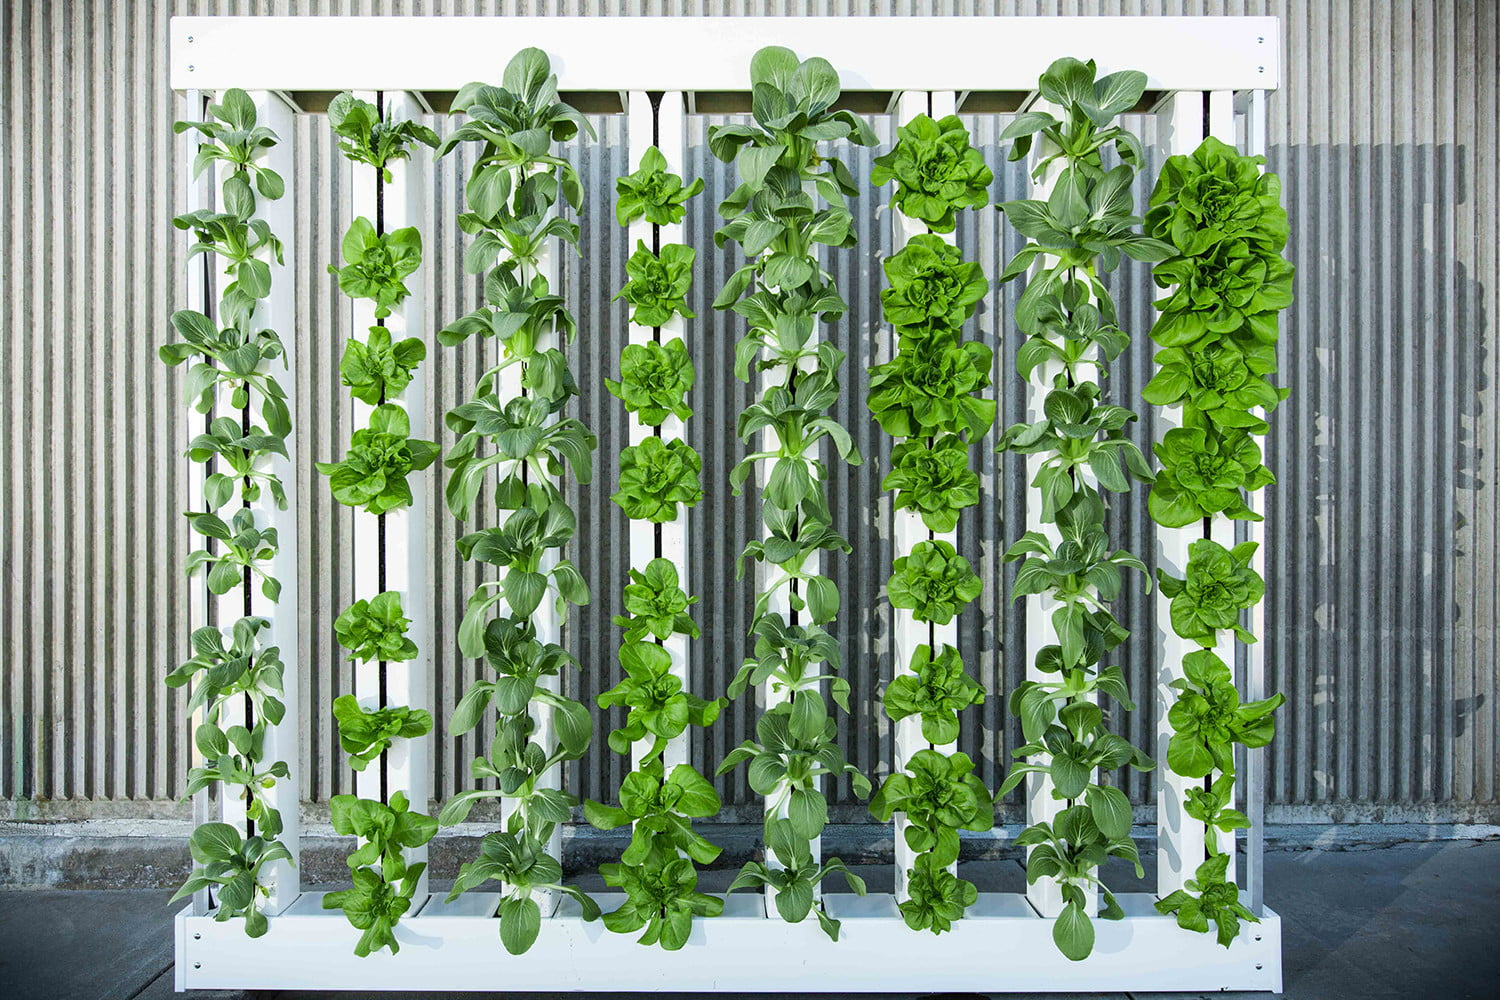 Tiny Homes Cost Will Vertical Farming Continue To Grow Or Has It Hit The